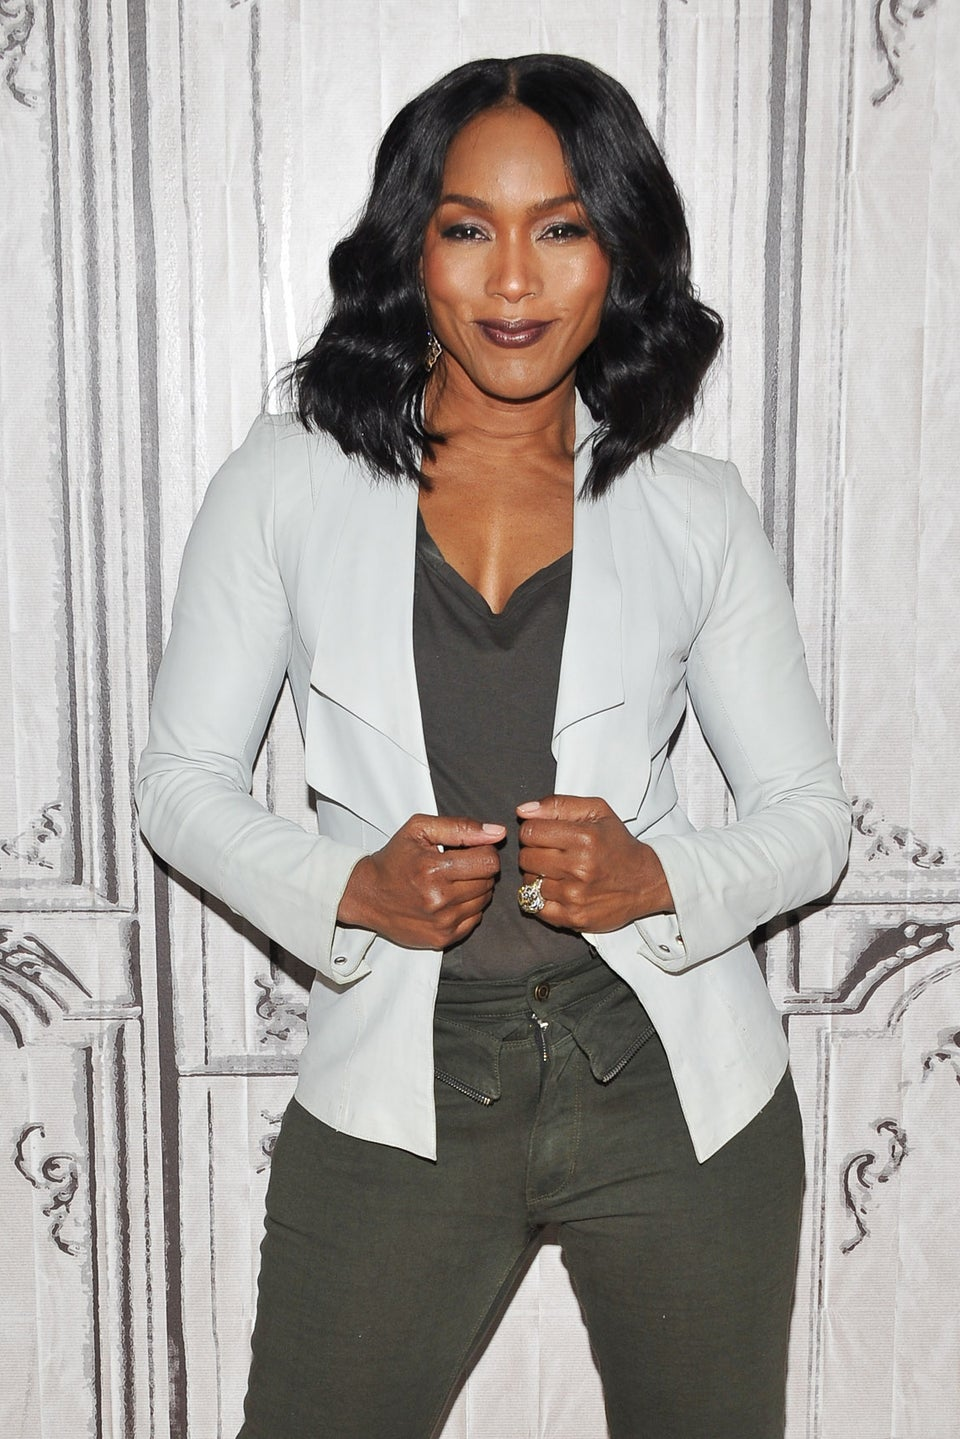 Angela Bassett Opens Up About Losing Her Mother And Saving Lives With New Campaign